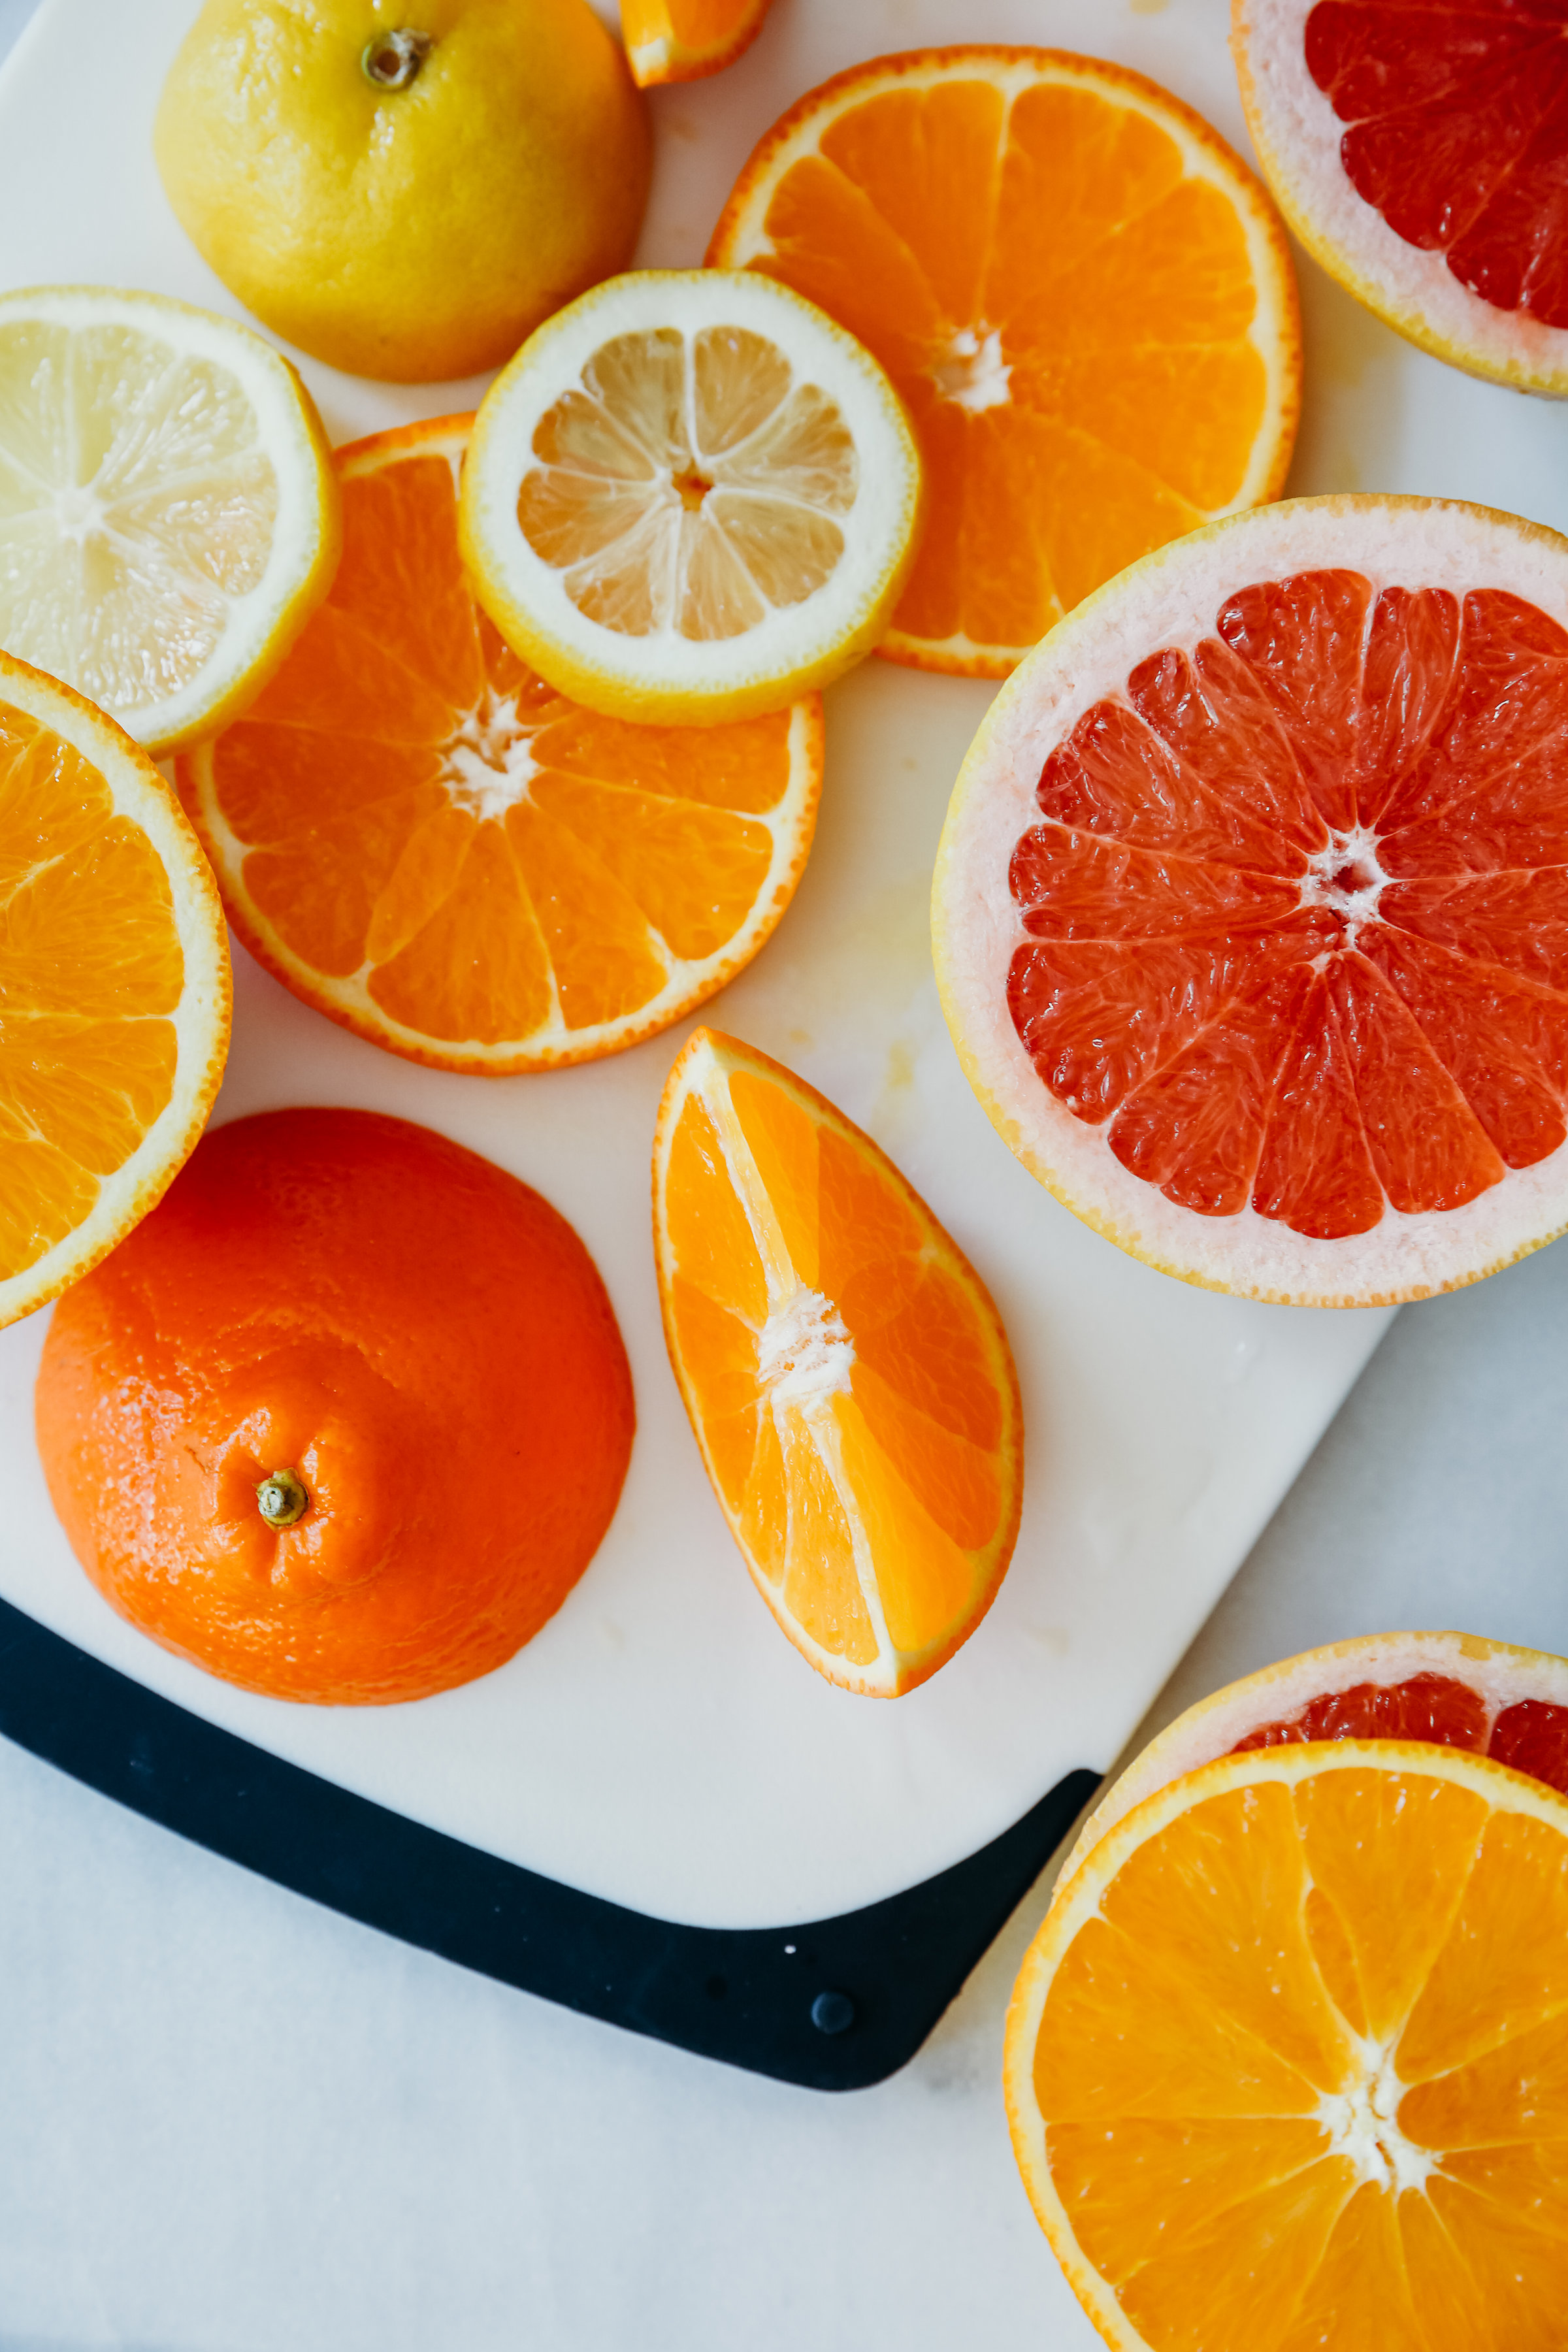 Oranges, Lemons, and Grapefruit | Hillary Jeanne Photography | Food Photography